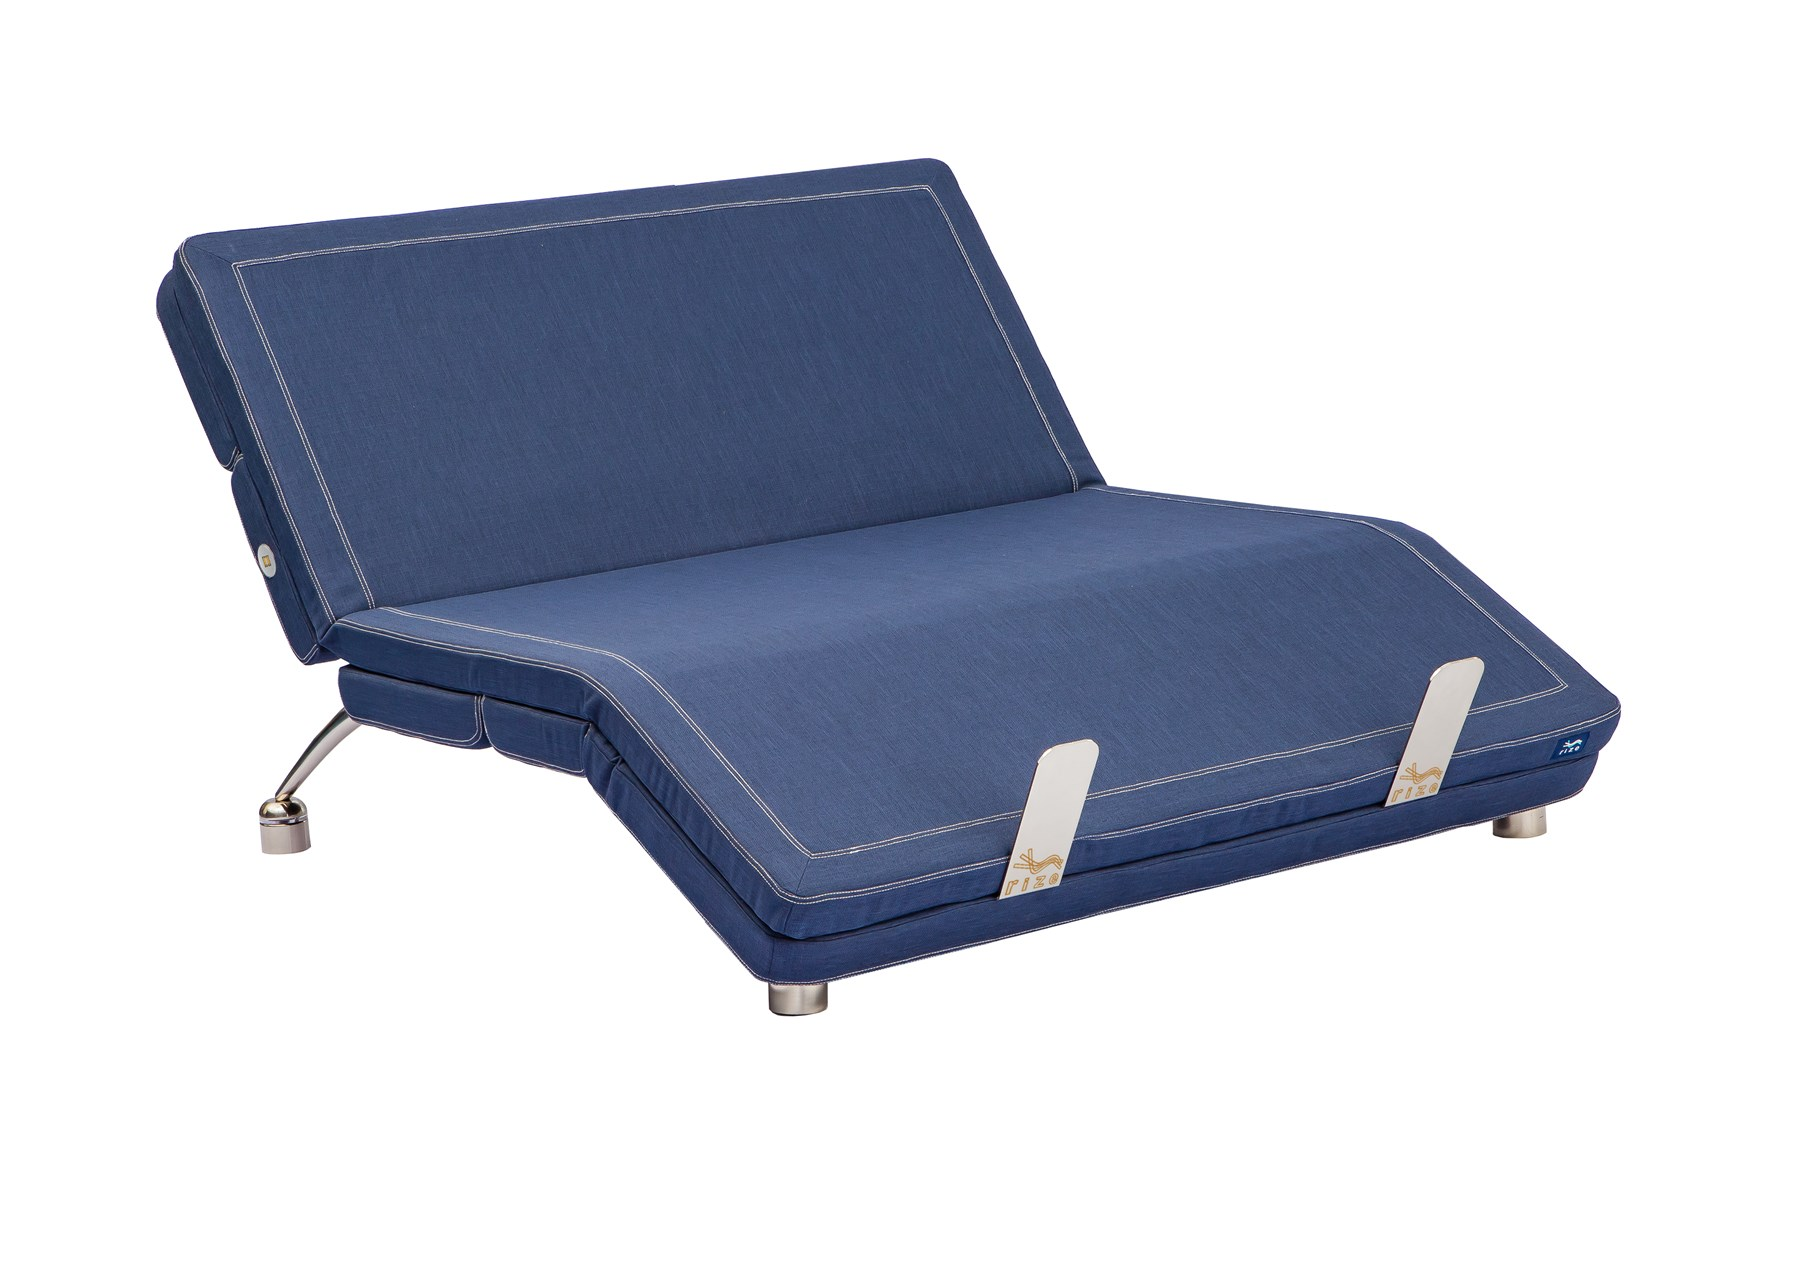 Mantua Rize Aviada Adjustable Bed Base